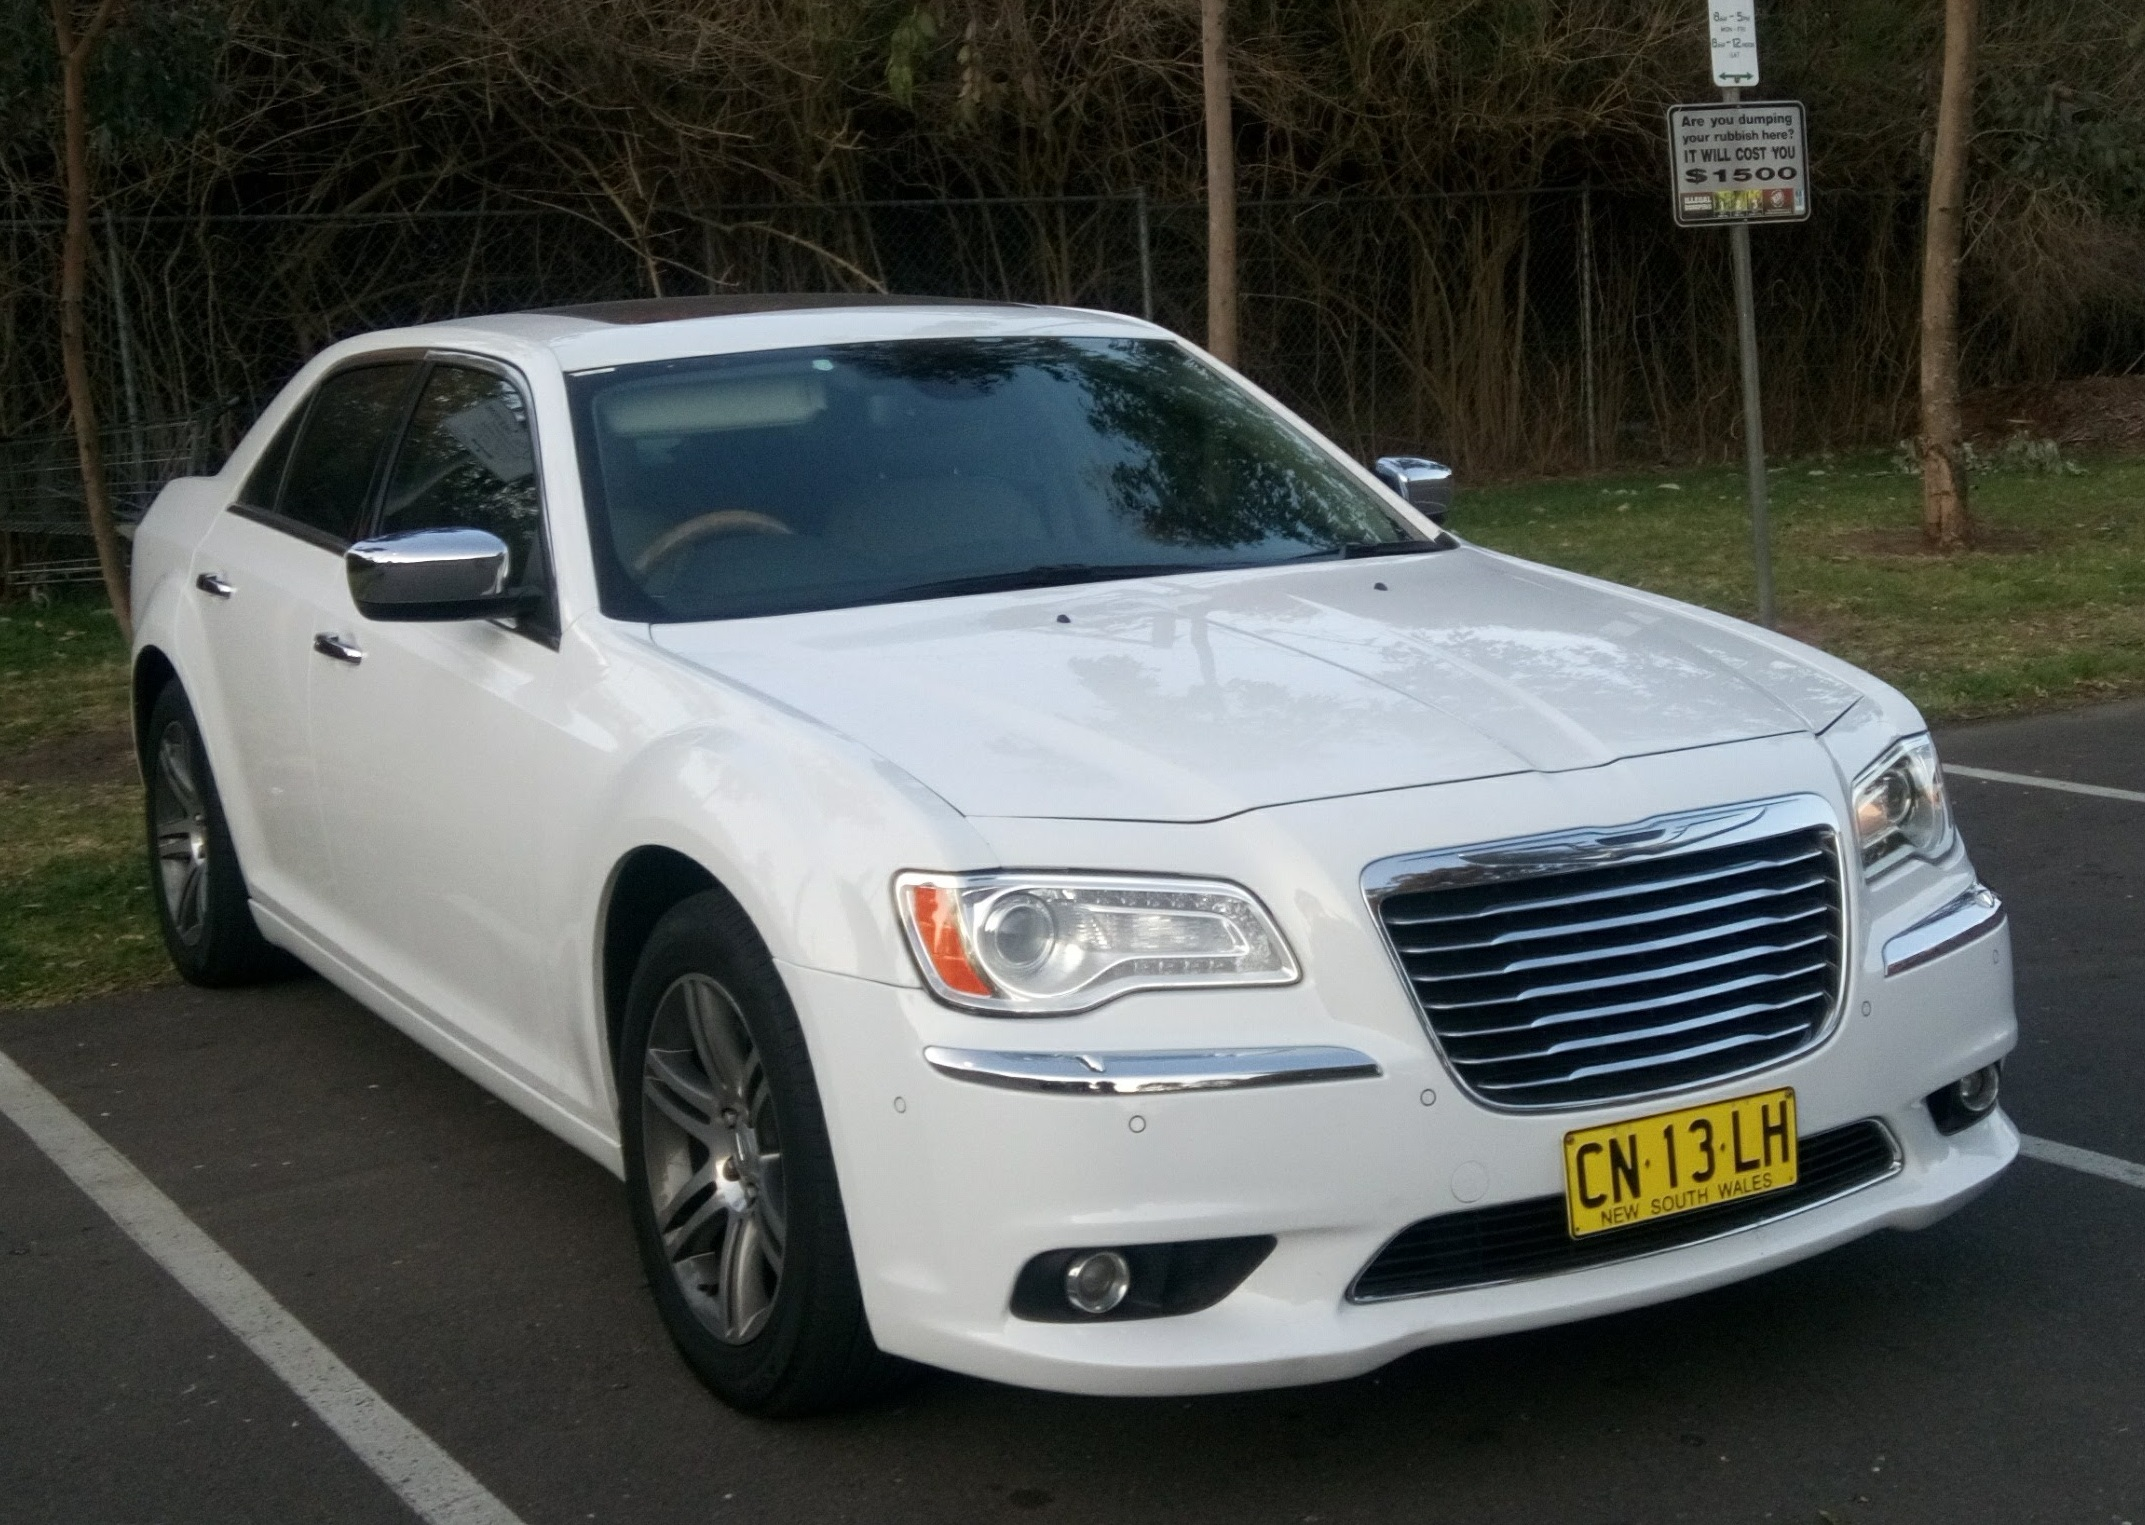 Picture of Tushar's 2013 Chrystler 300C Luxury